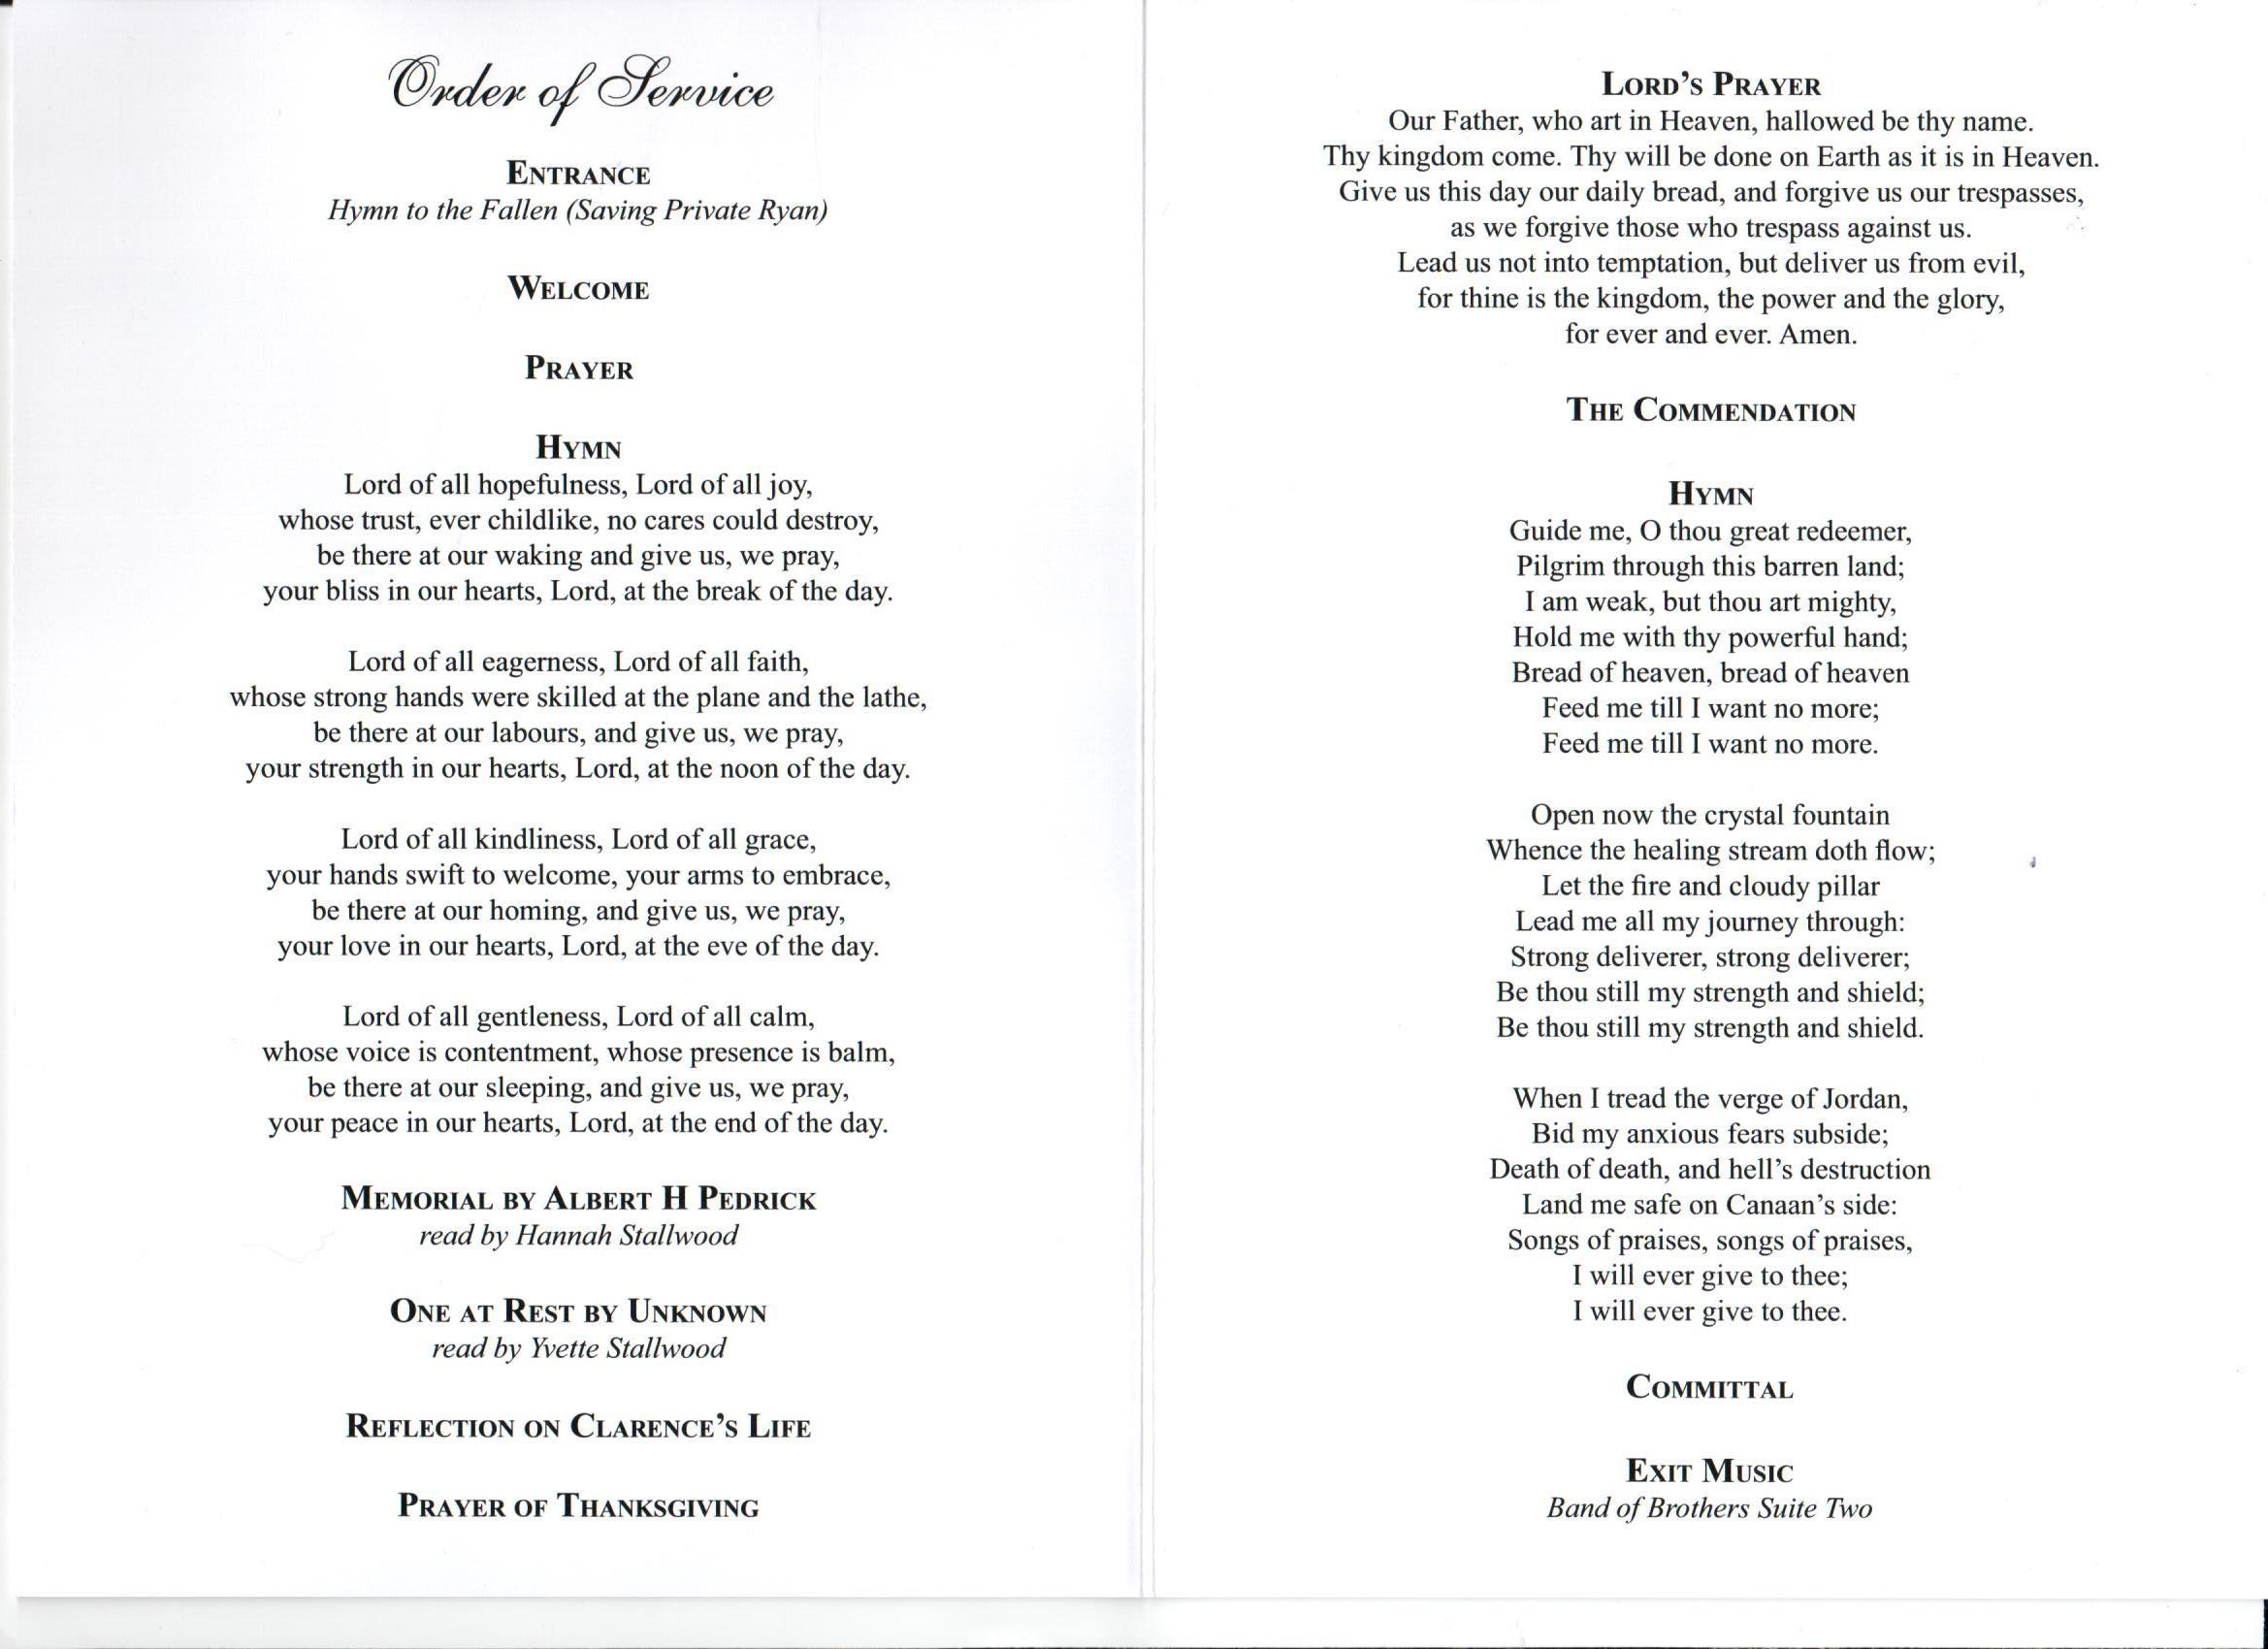 funeral stationery with grace